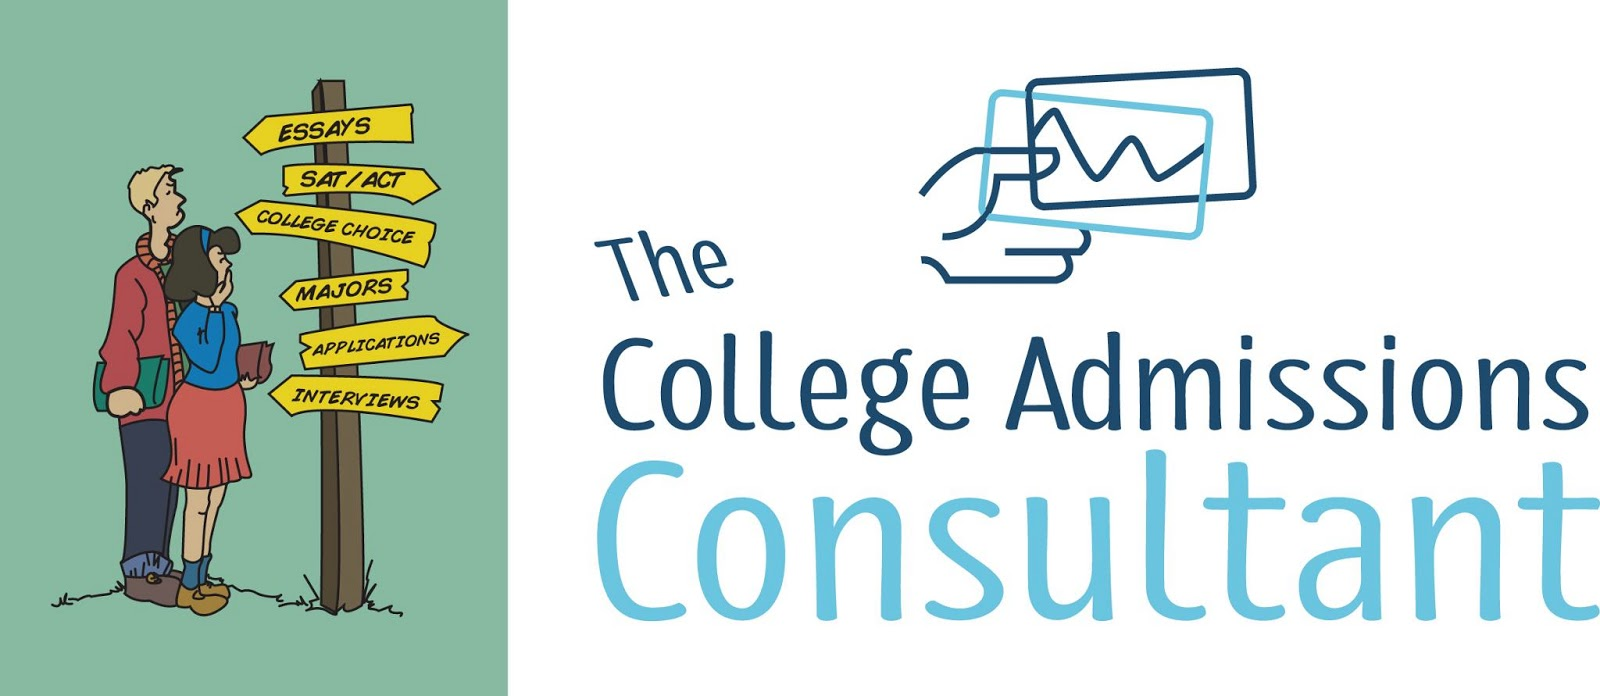 college admissions essay consultant Impress college admissions counselors with a well-written essay or personal statement this is the best way to distinguish yourself from other applicants and prove to admissions counselors that you're a great fit for their school.